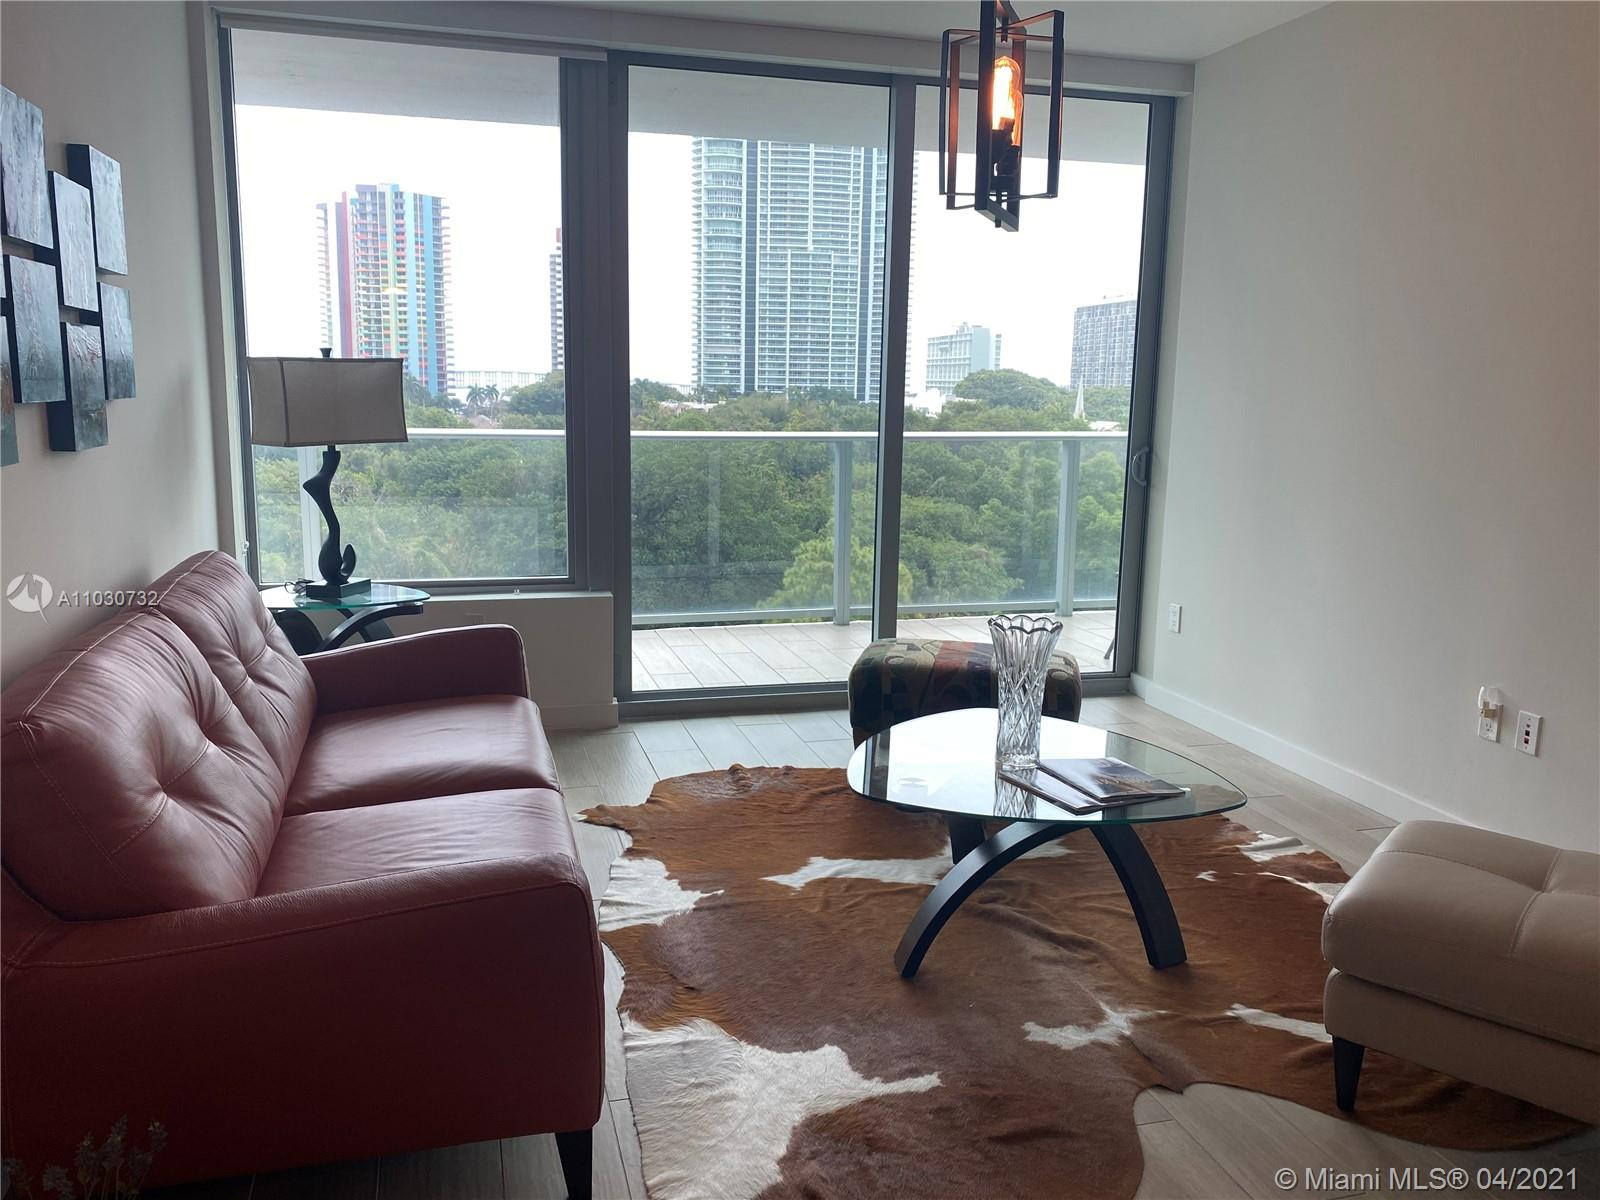 Le Parc At Brickell #715 - 1600 SW 1st Ave #715, Miami, FL 33129